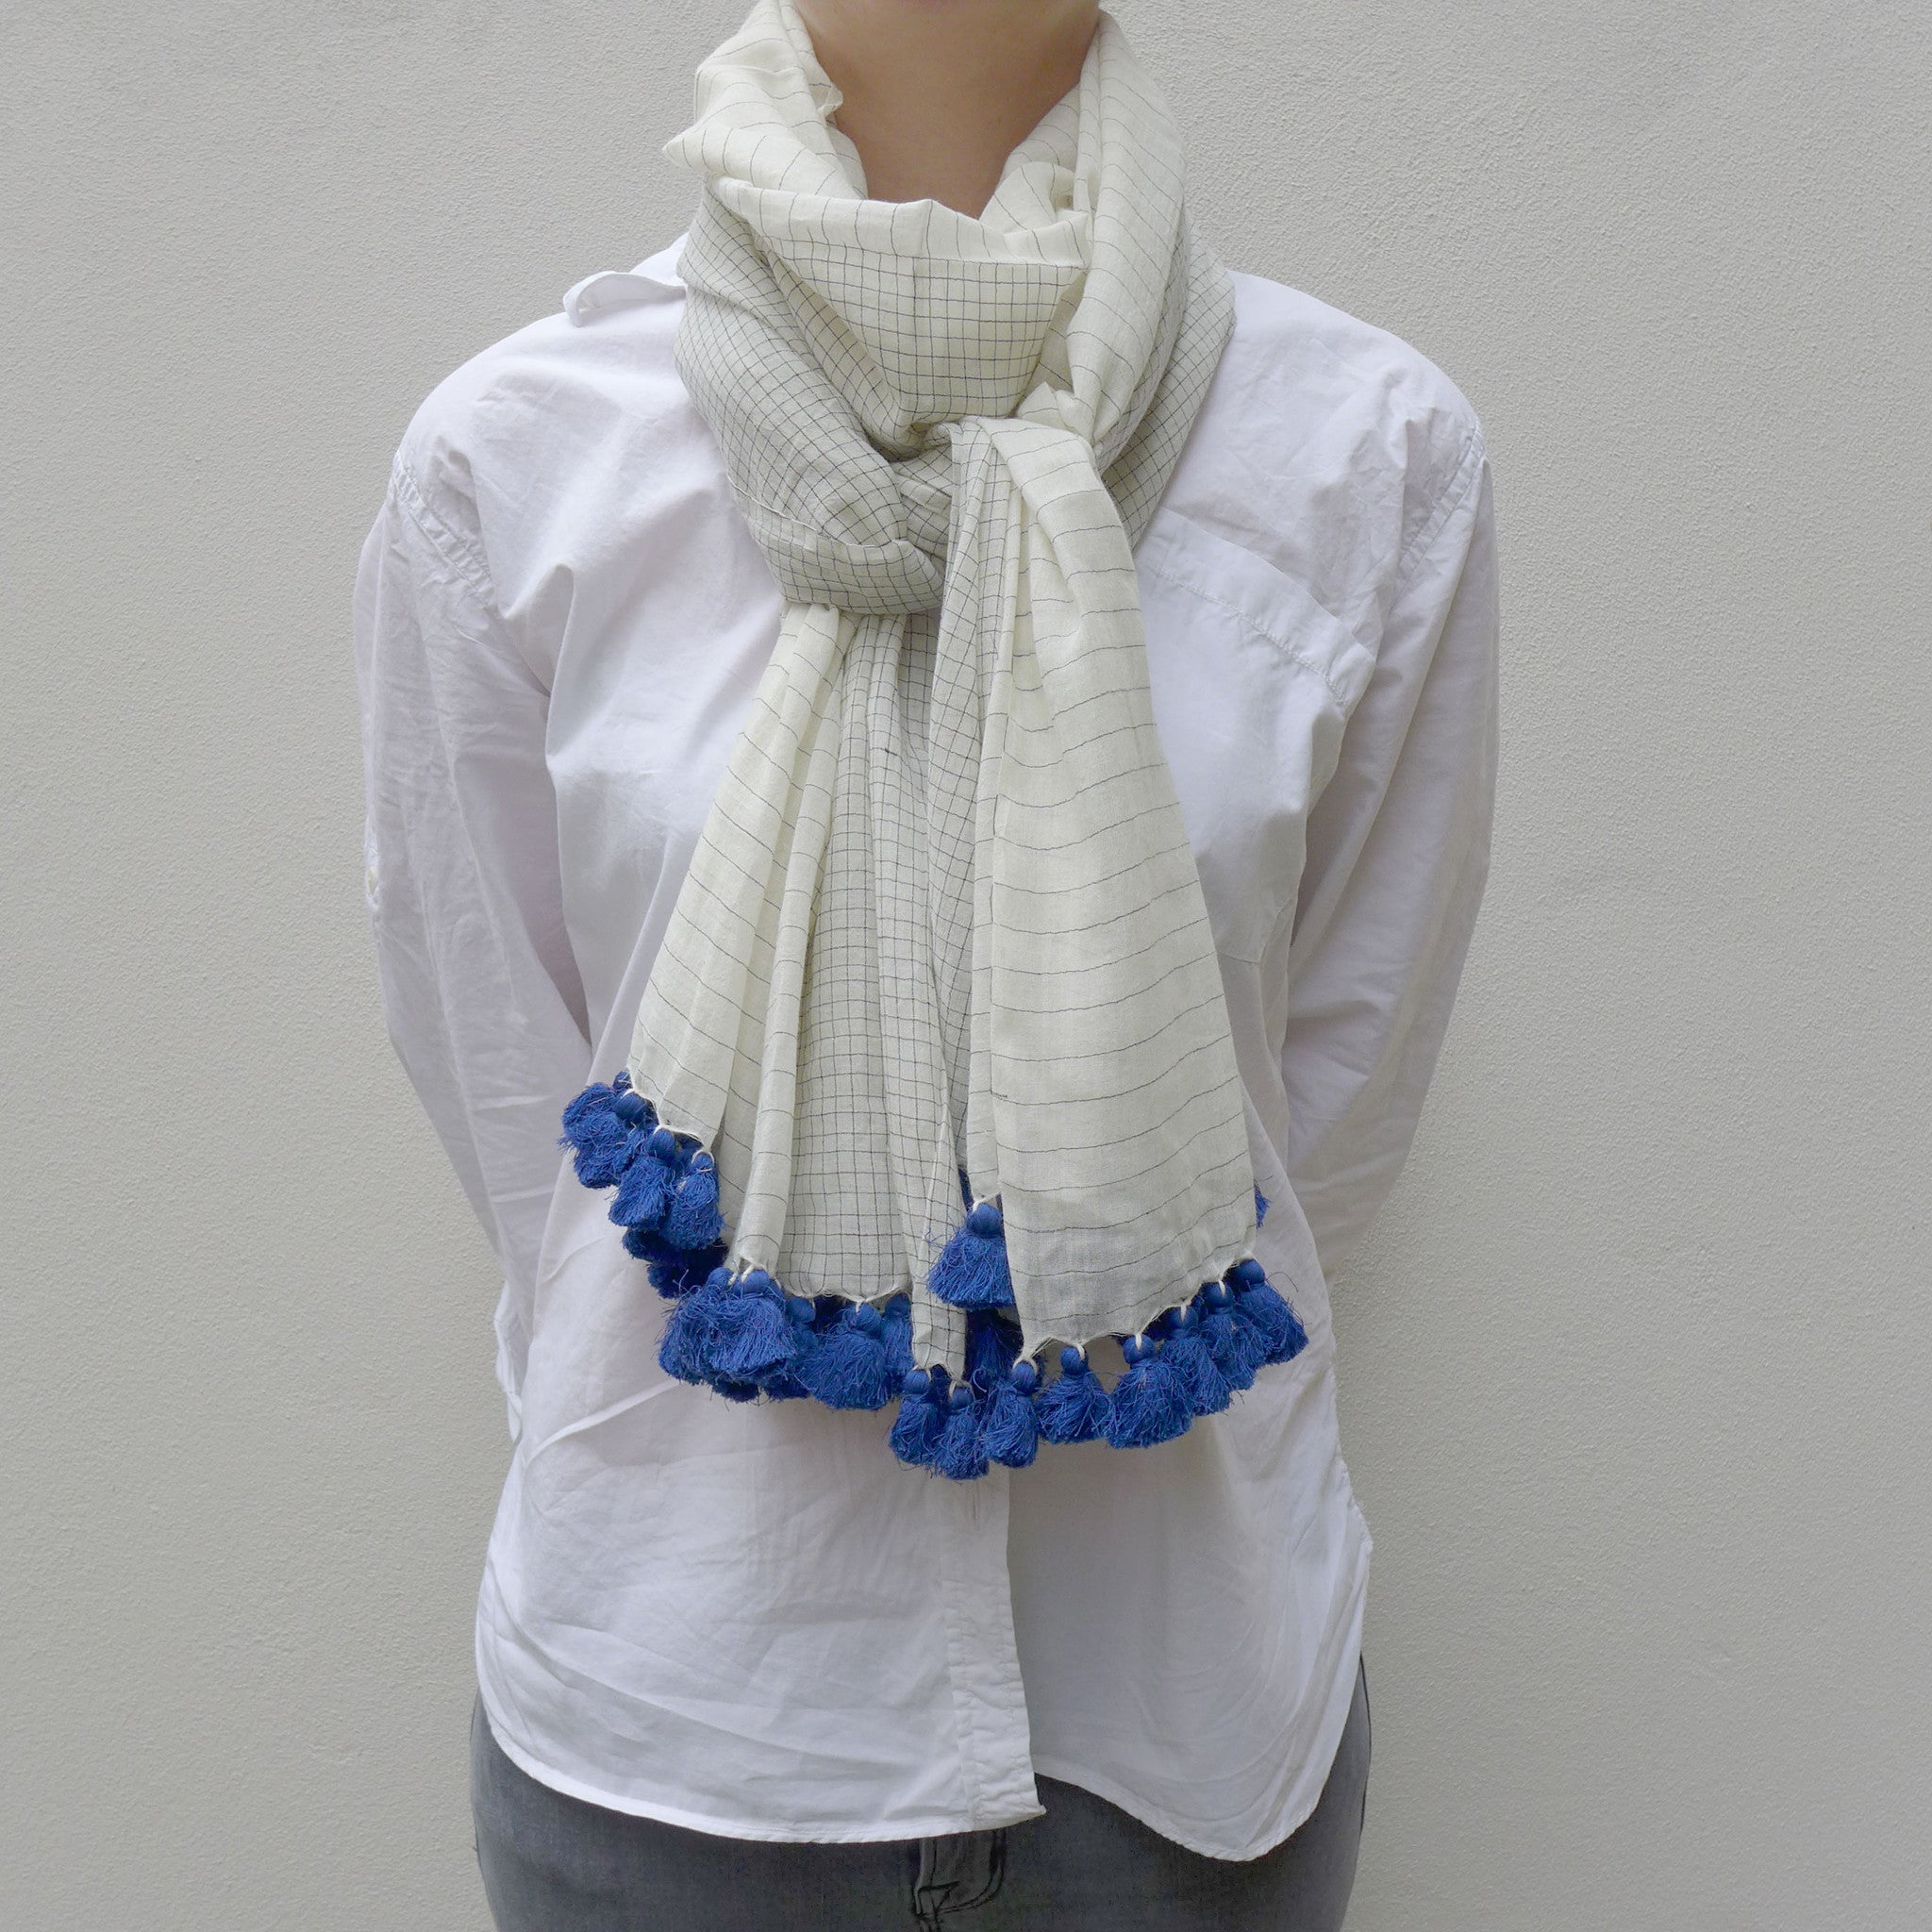 Off-white/blue woven cotton shawl